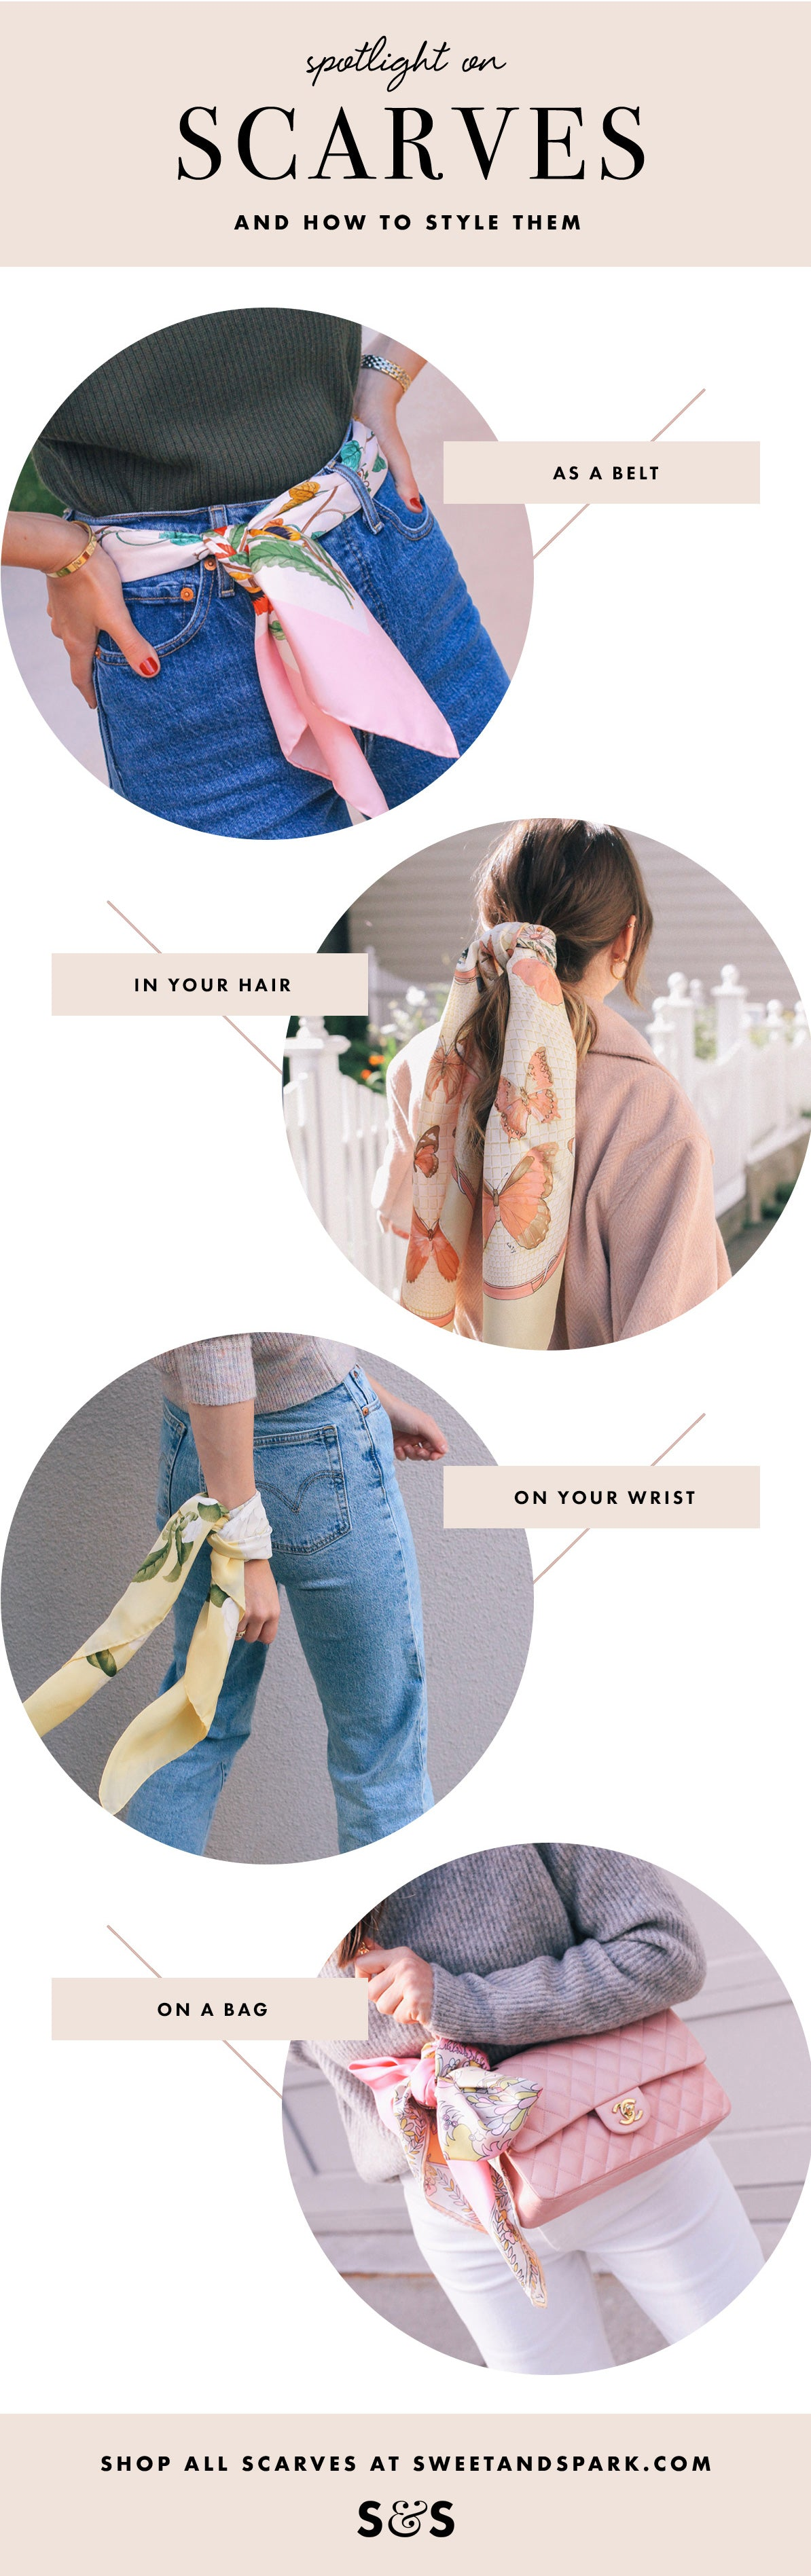 How To Style A Scarf 4 Ways